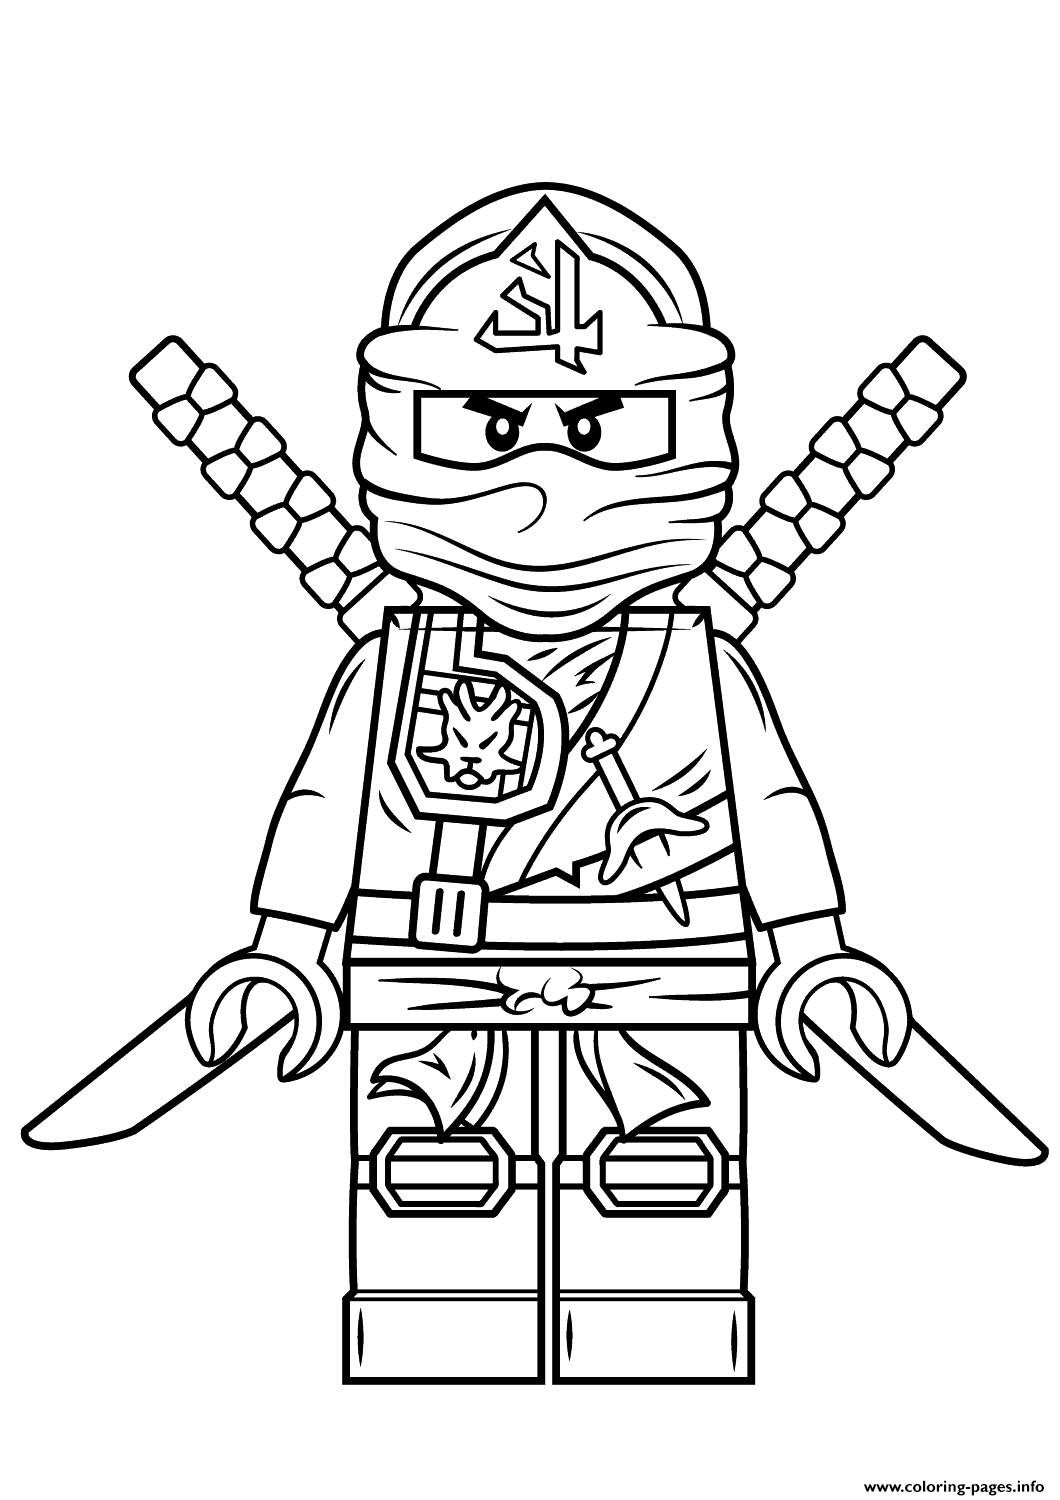 Lego Ninjago Coloring Pages Pdf Free Coloring Pages Library